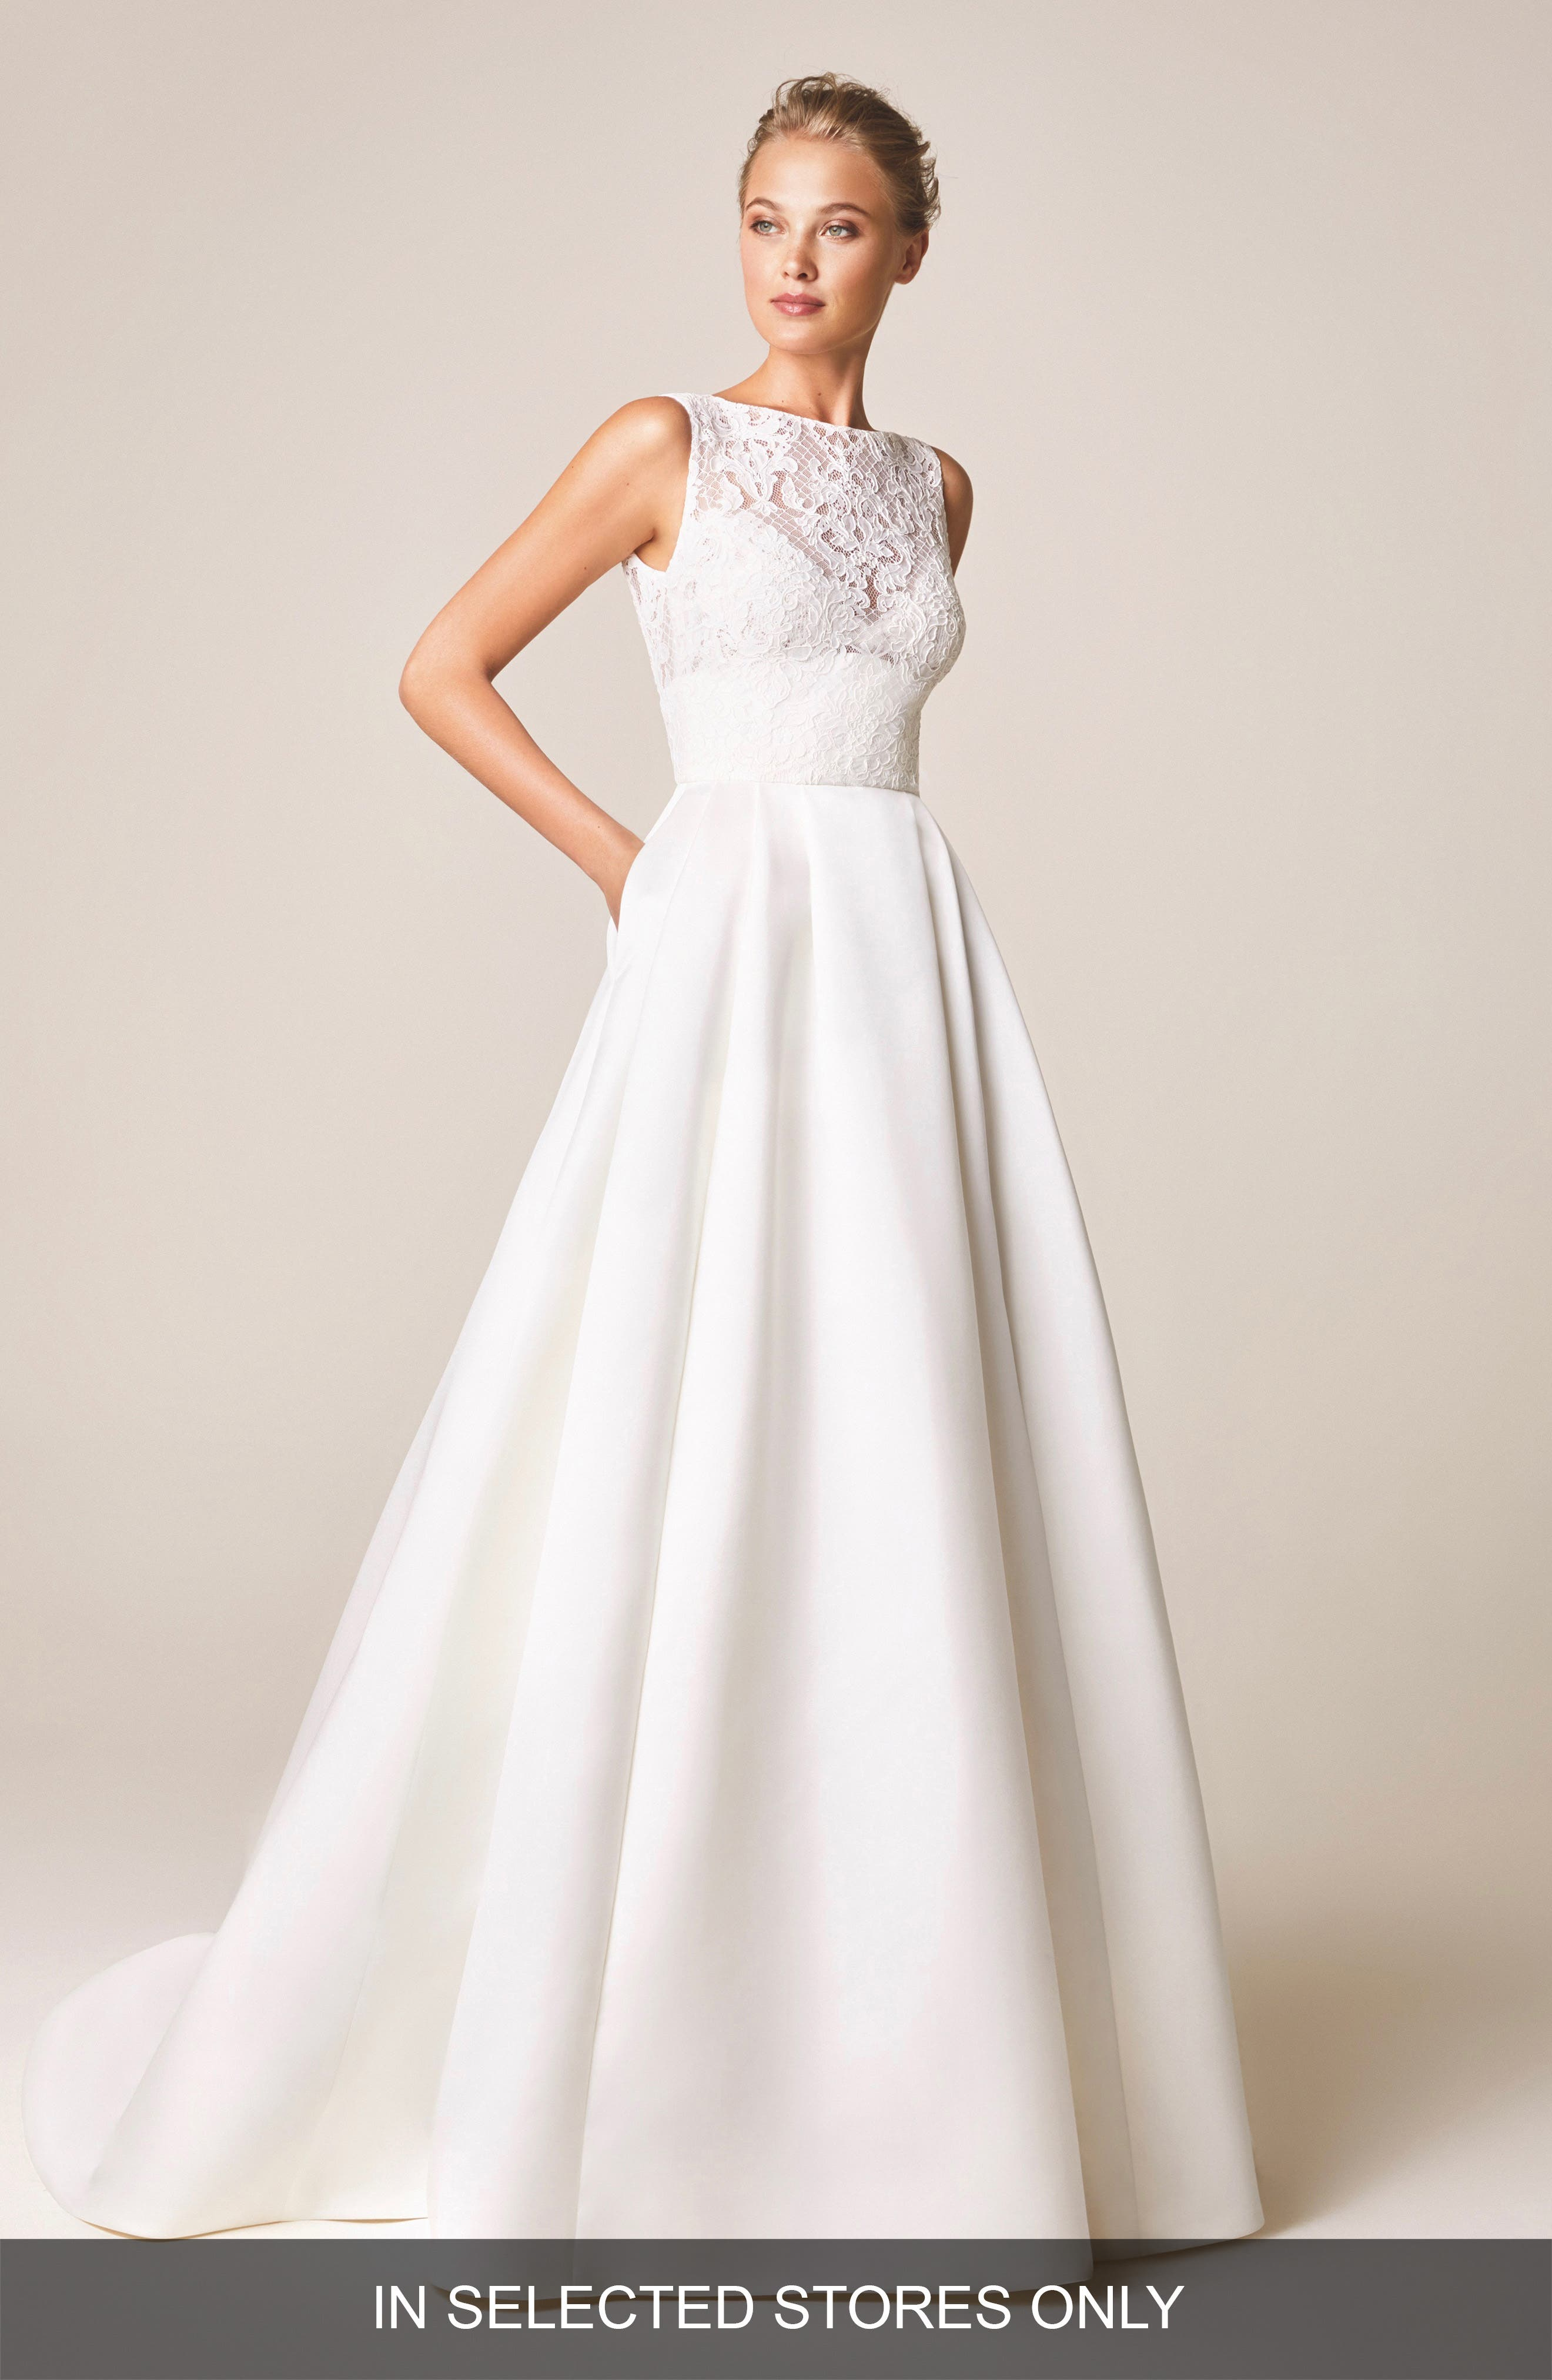 Jesus Peiro Ancora Lace Open Back Wedding Dress, Size IN STORE ONLY - White